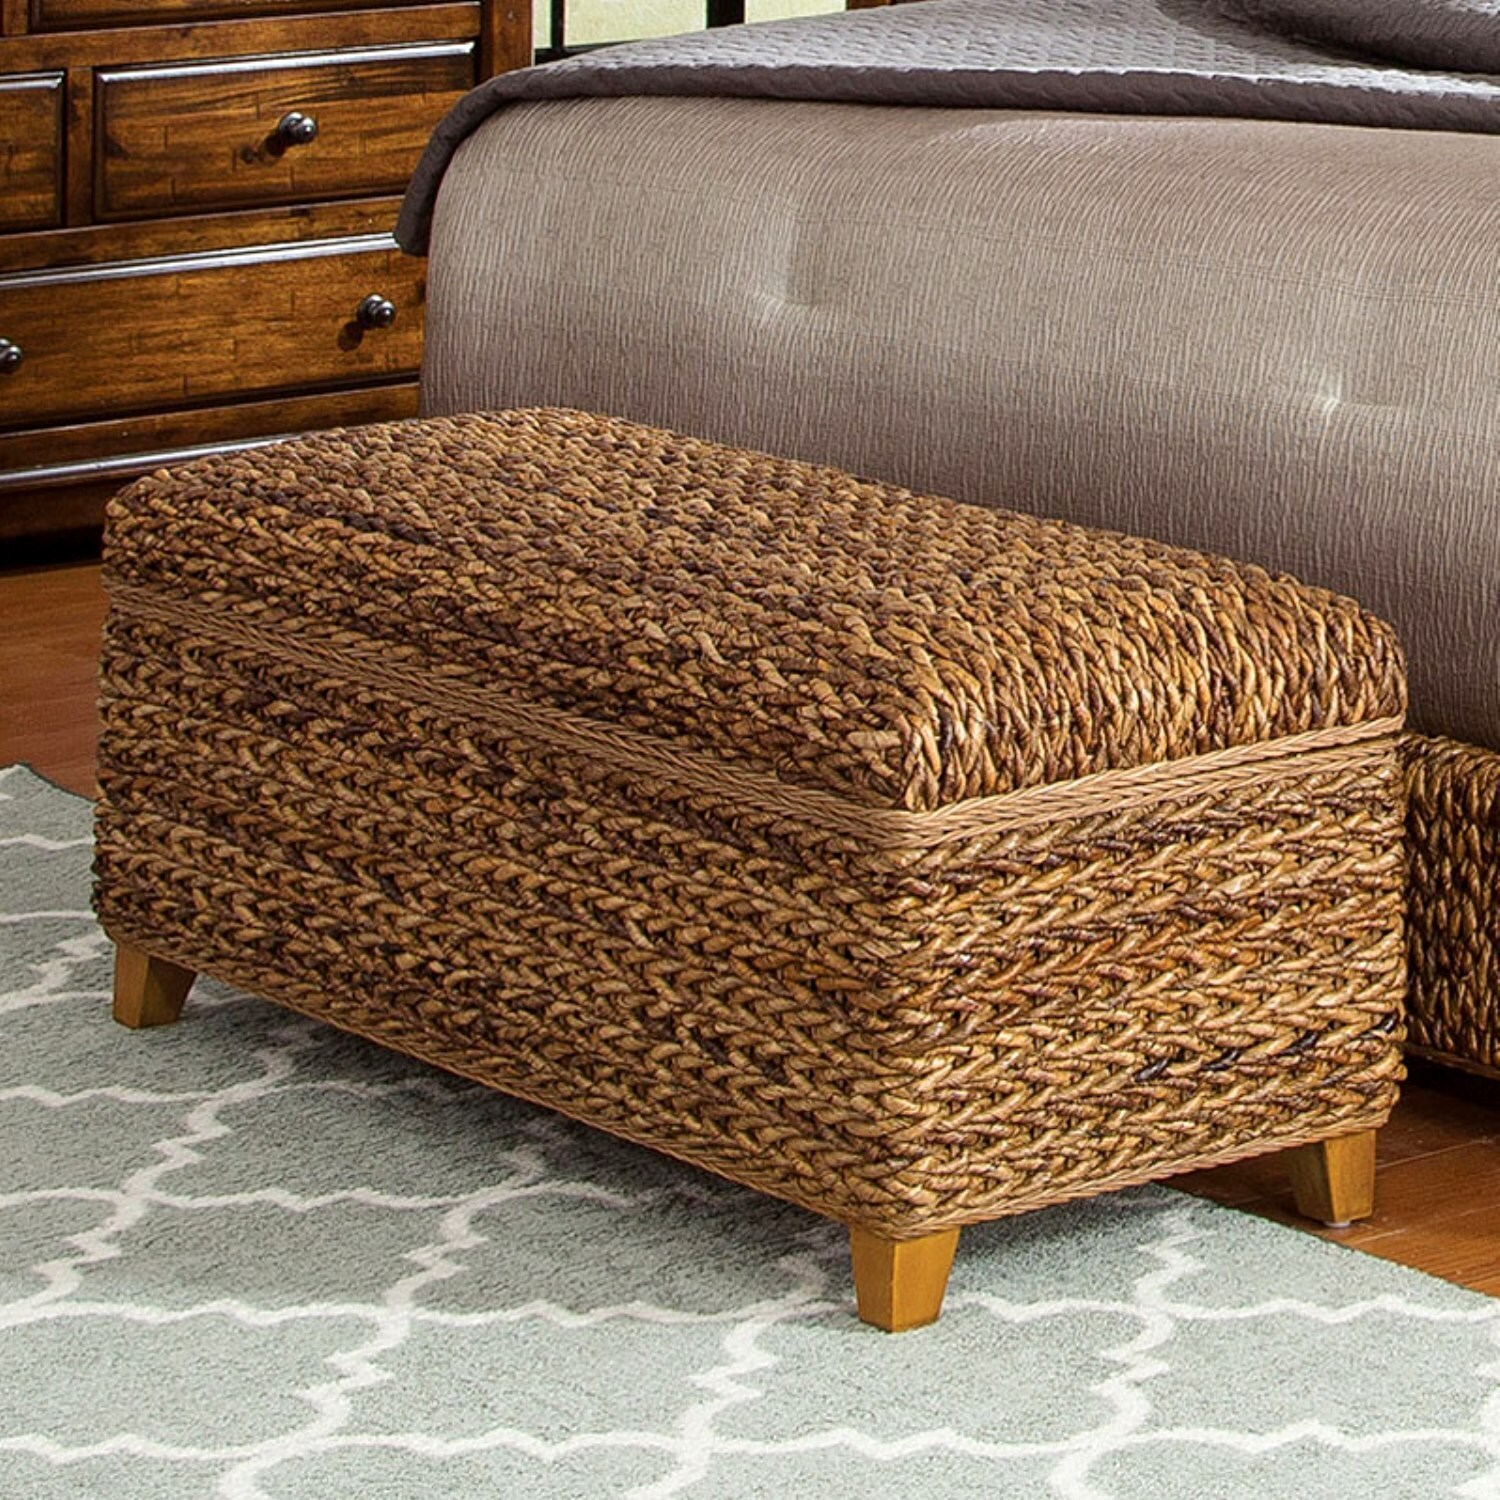 Modern Country Style Hand Woven Banana Leaf Bed With Storage Ottoman   Free  Shipping Today   Overstock   20742689